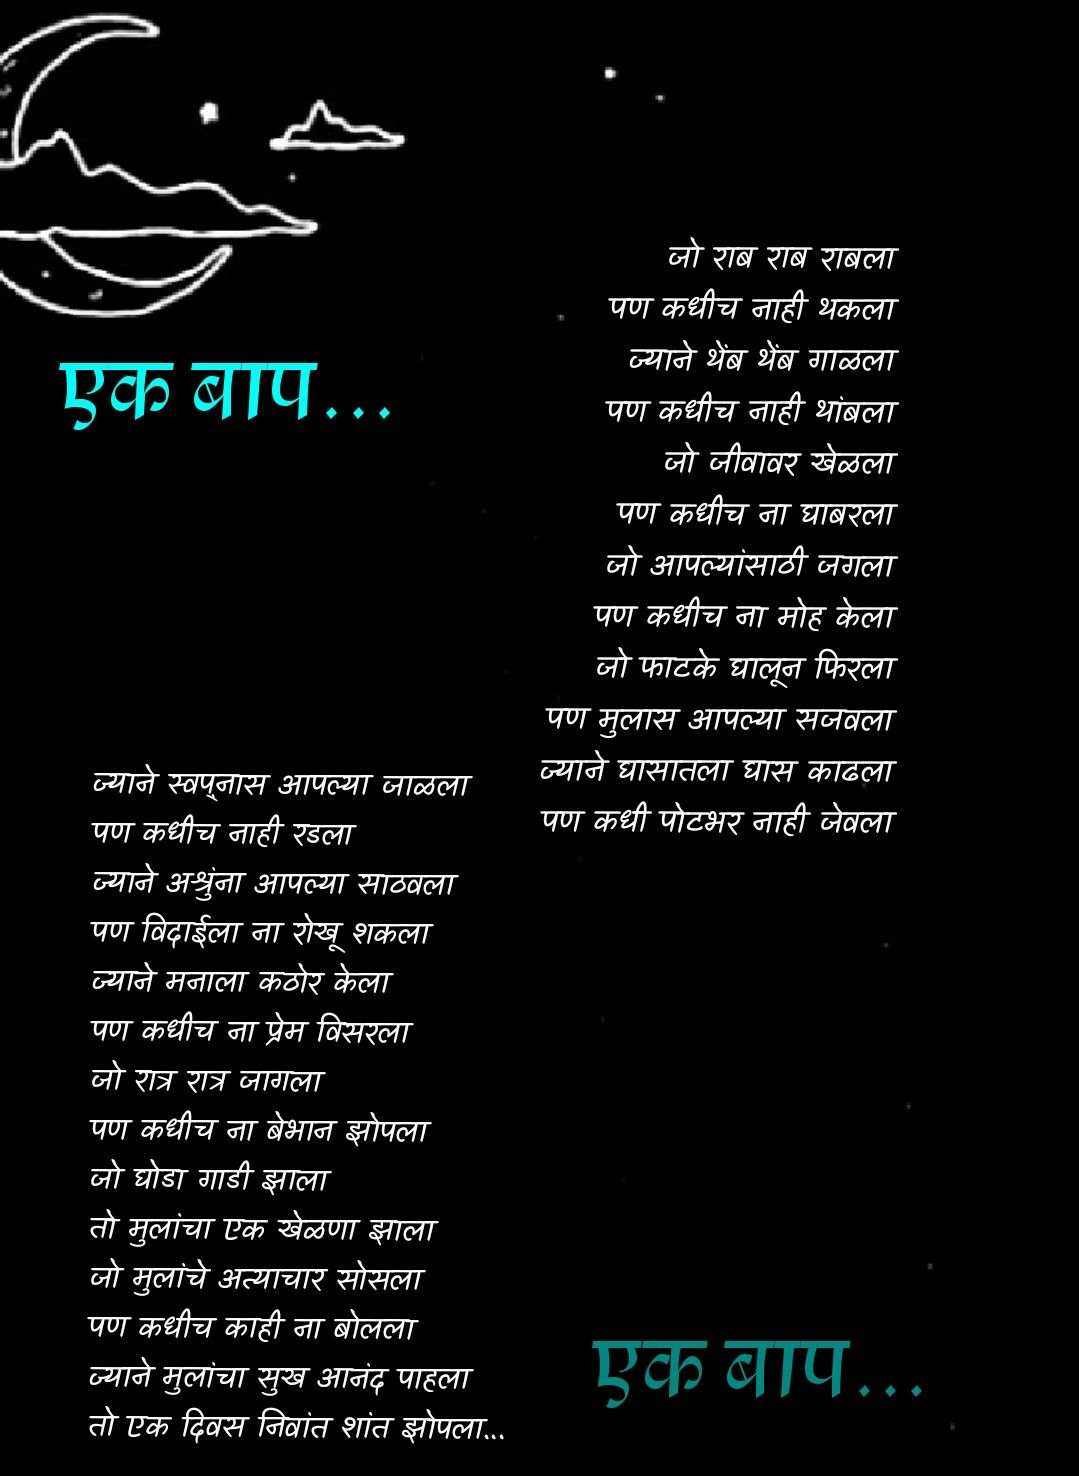 तो बाप असतो Father quotes, Kids poems, Birthday poems